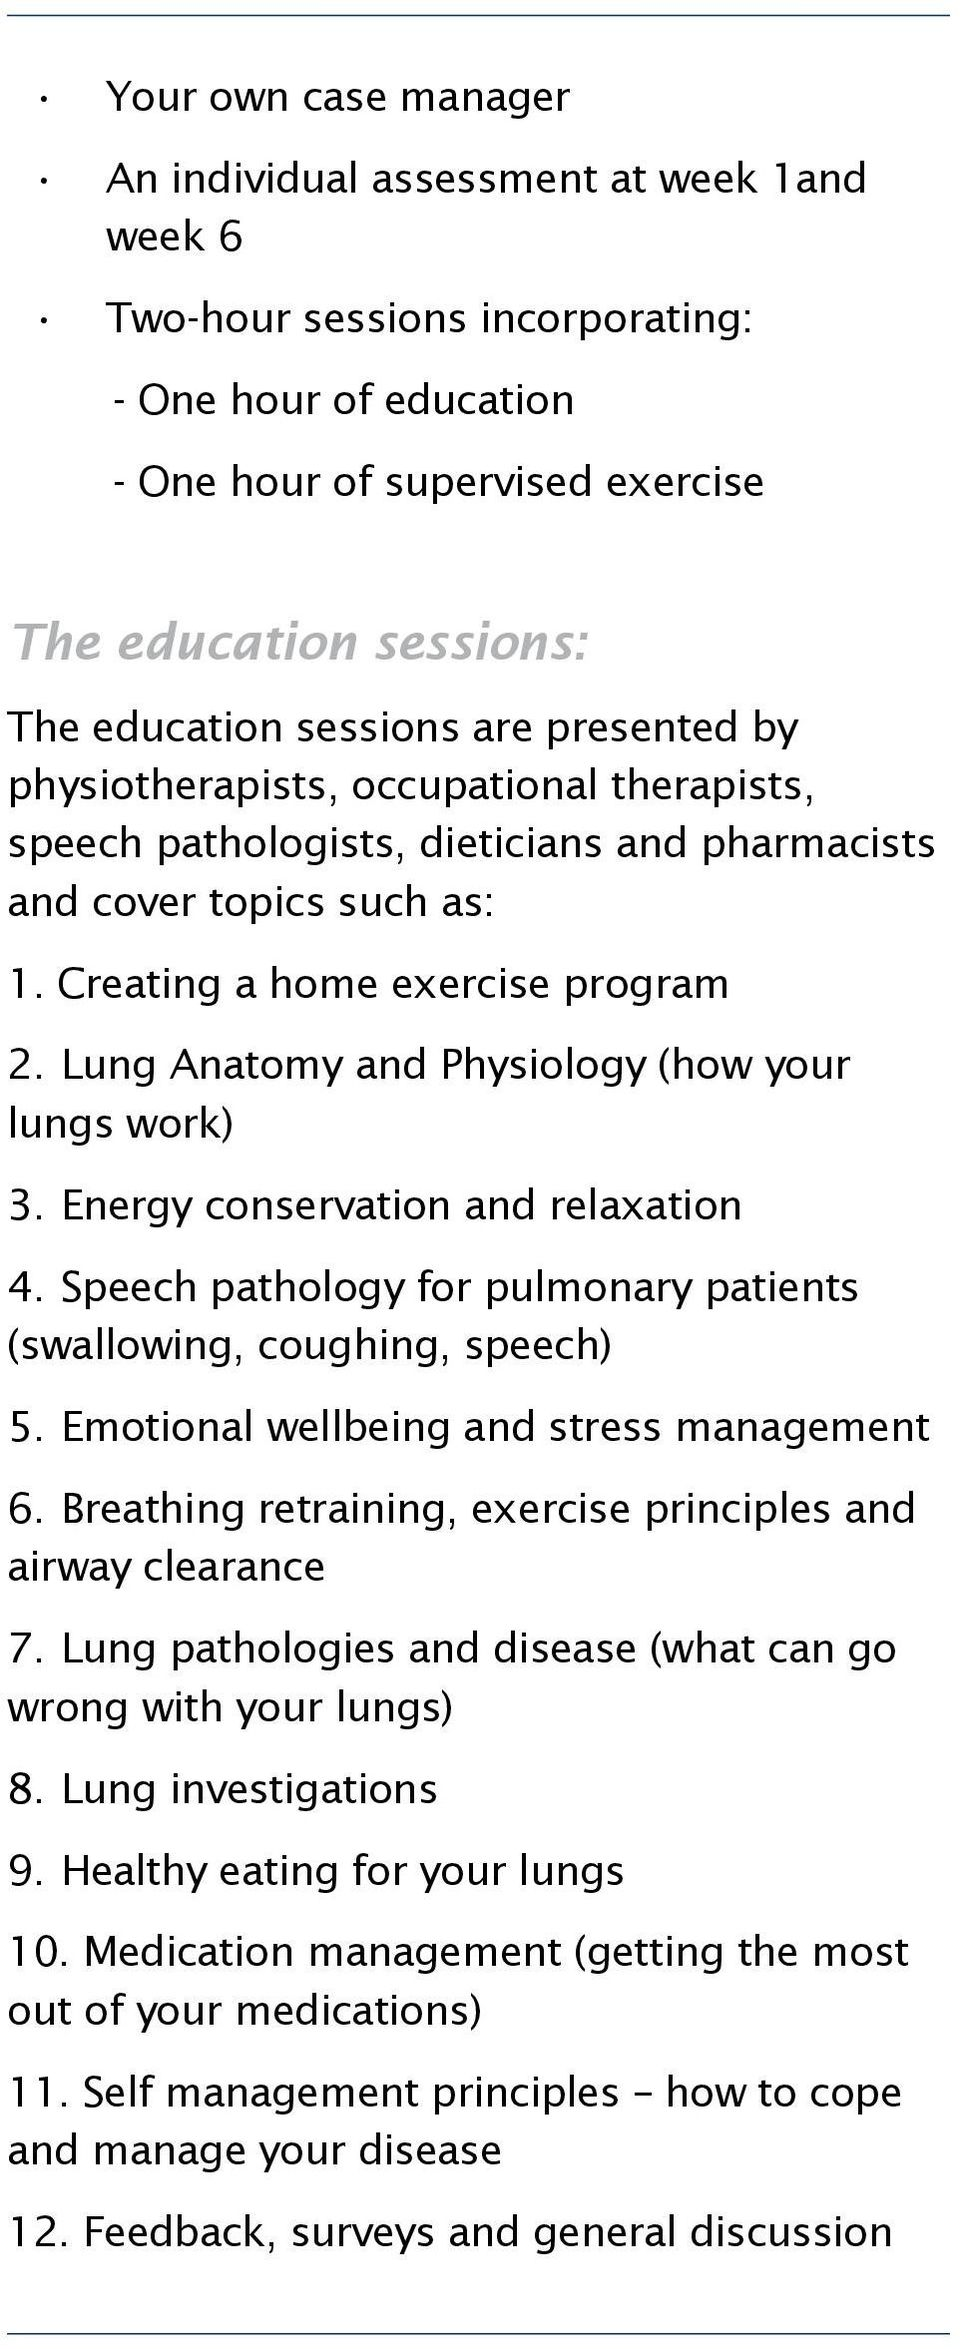 Lung Anatomy and Physiology (how your lungs work) 3. Energy conservation and relaxation 4. Speech pathology for pulmonary patients (swallowing, coughing, speech) 5.